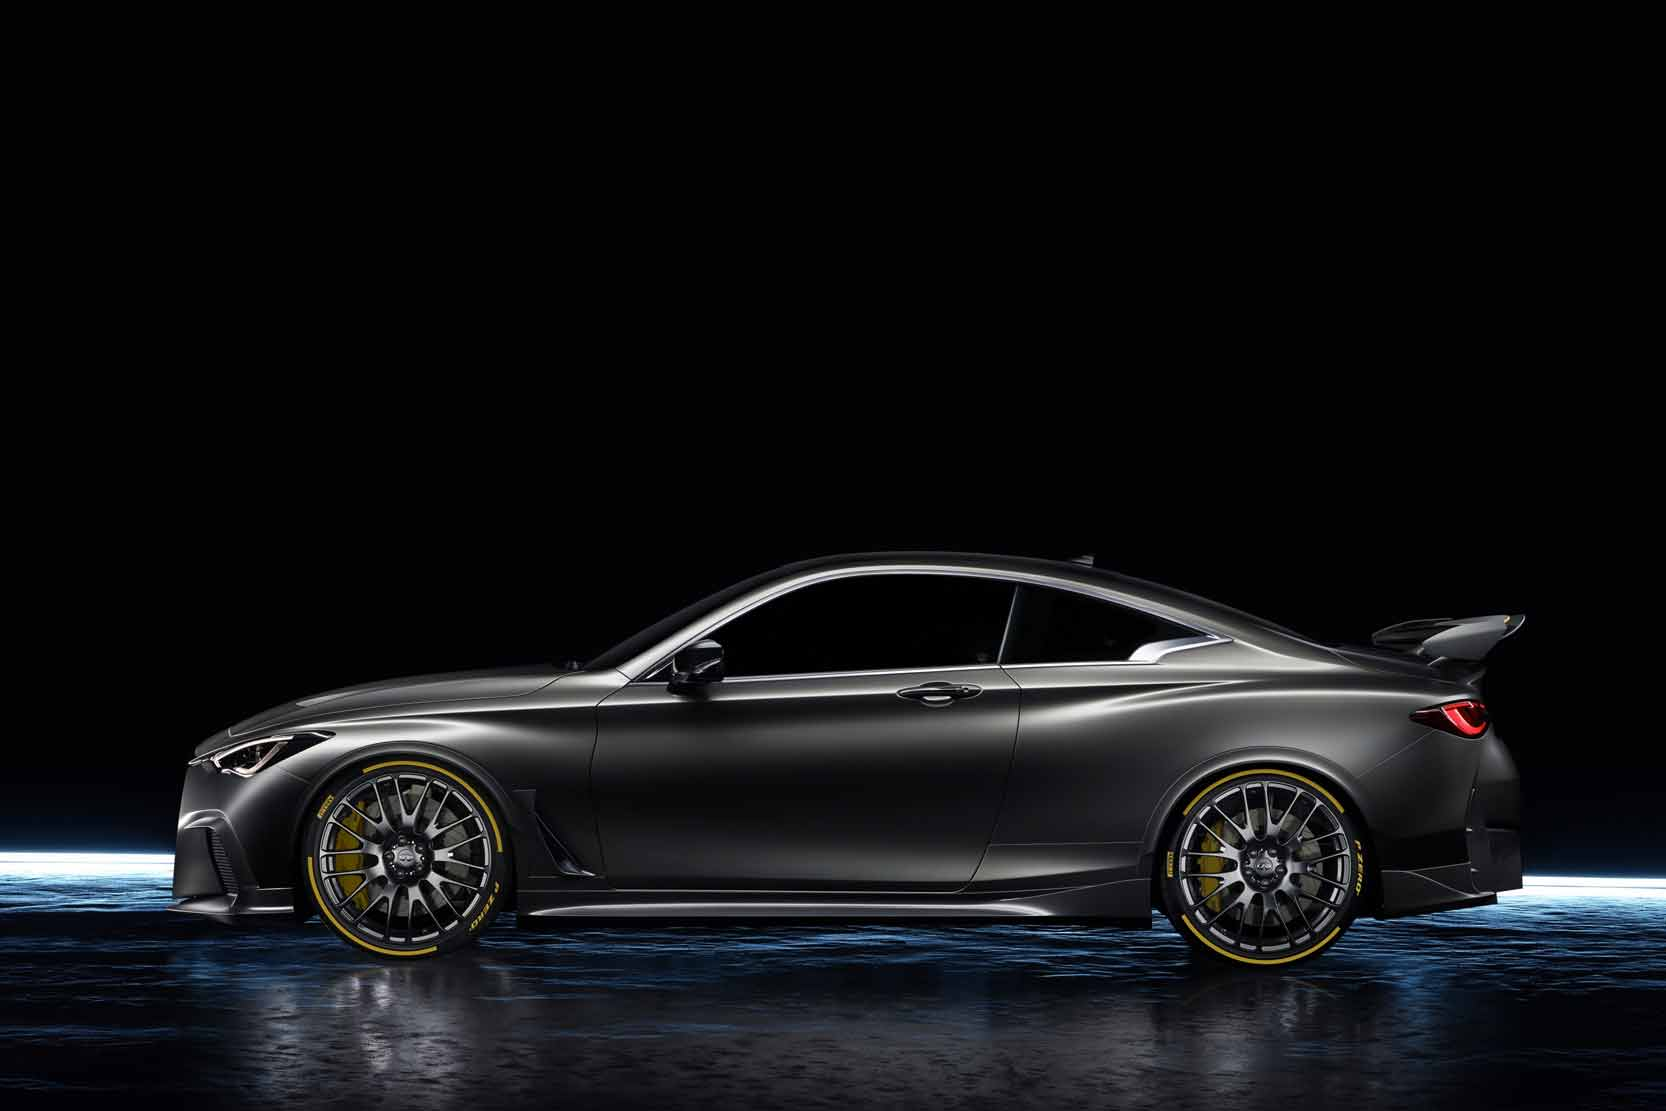 Exterieur_Infiniti-Project-Black-S_3